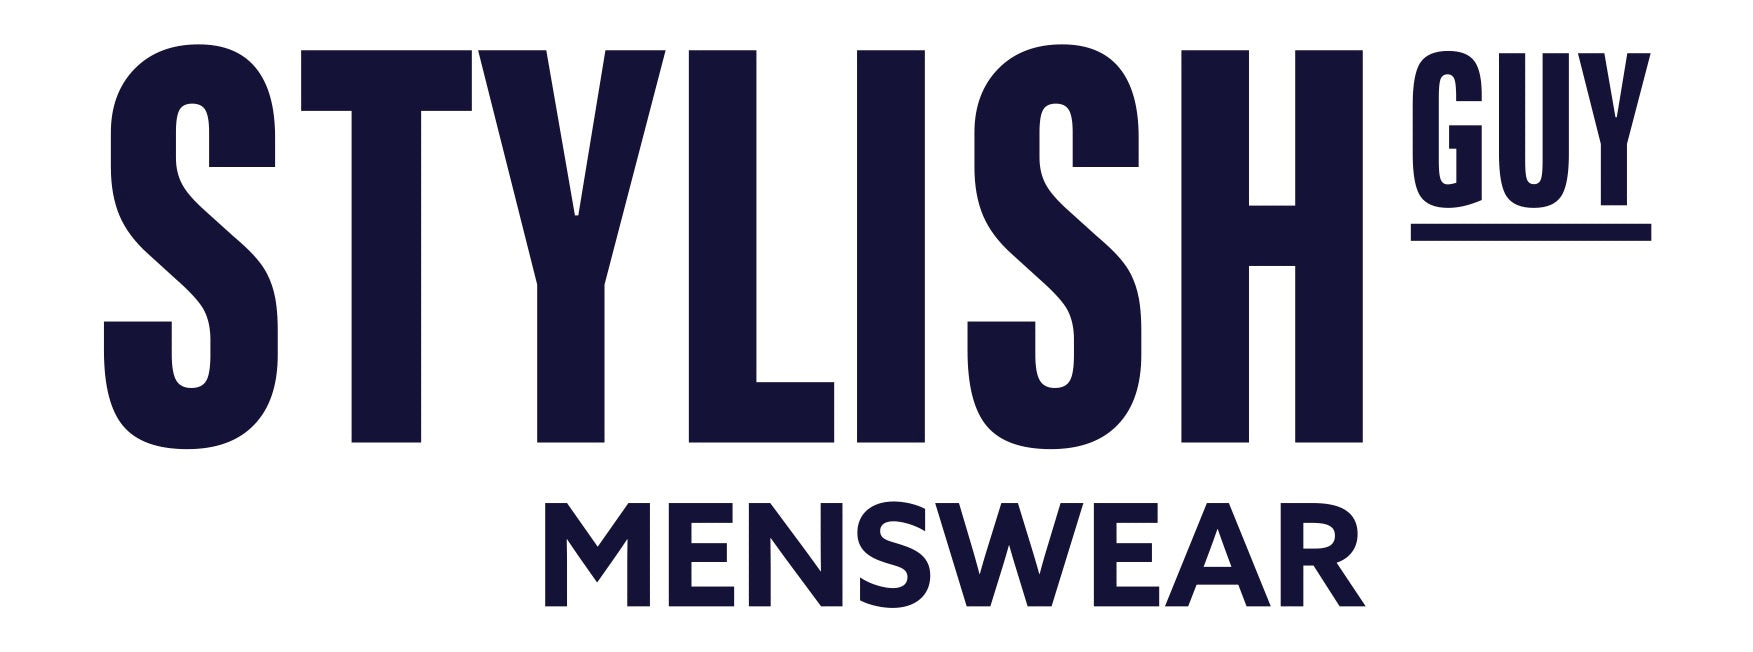 The Stylish Guy Menswear Logo